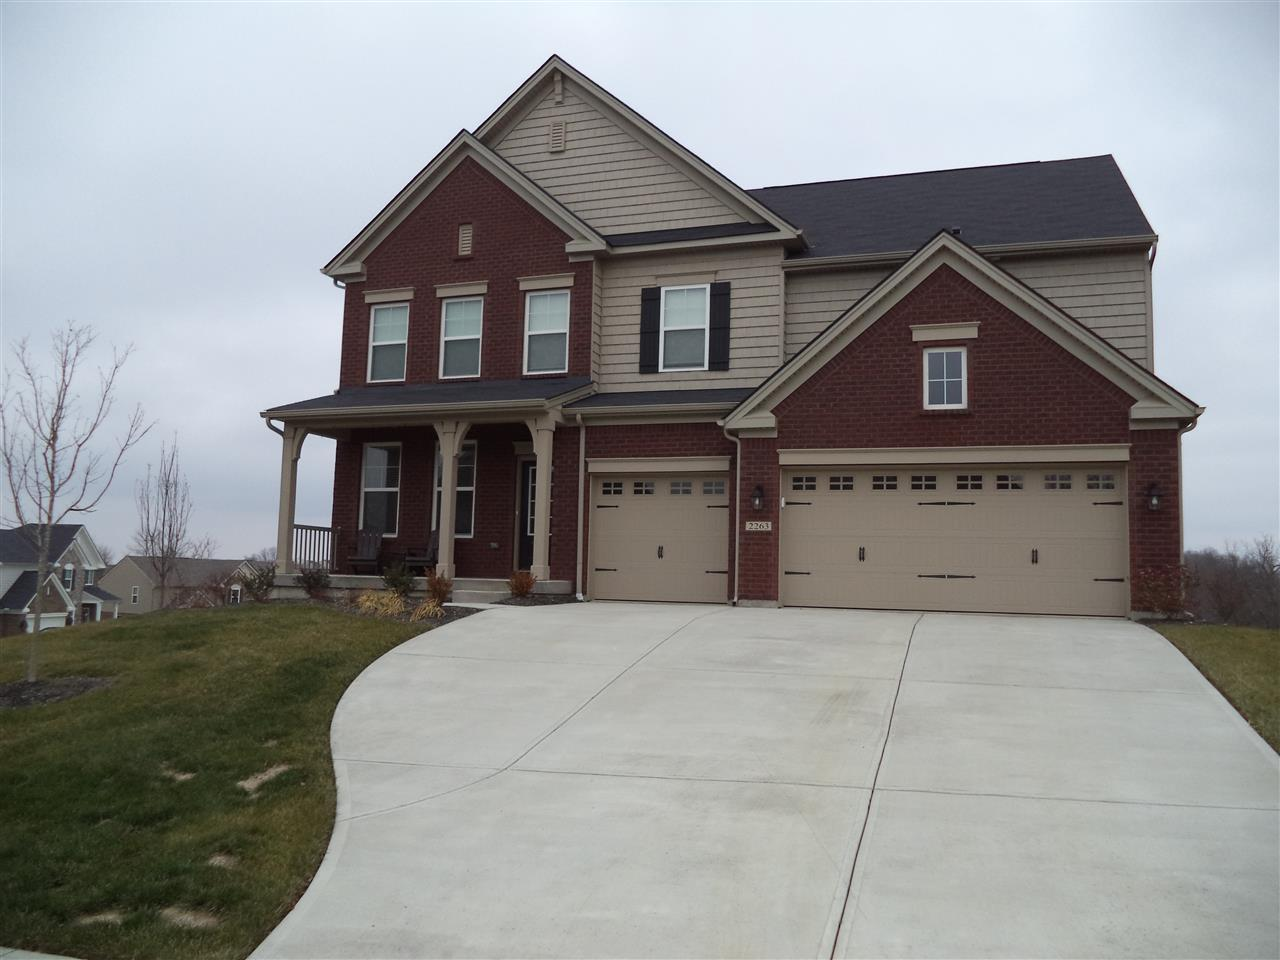 Photo 1 for 2263 Daybloom Ct Hebron, KY 41048